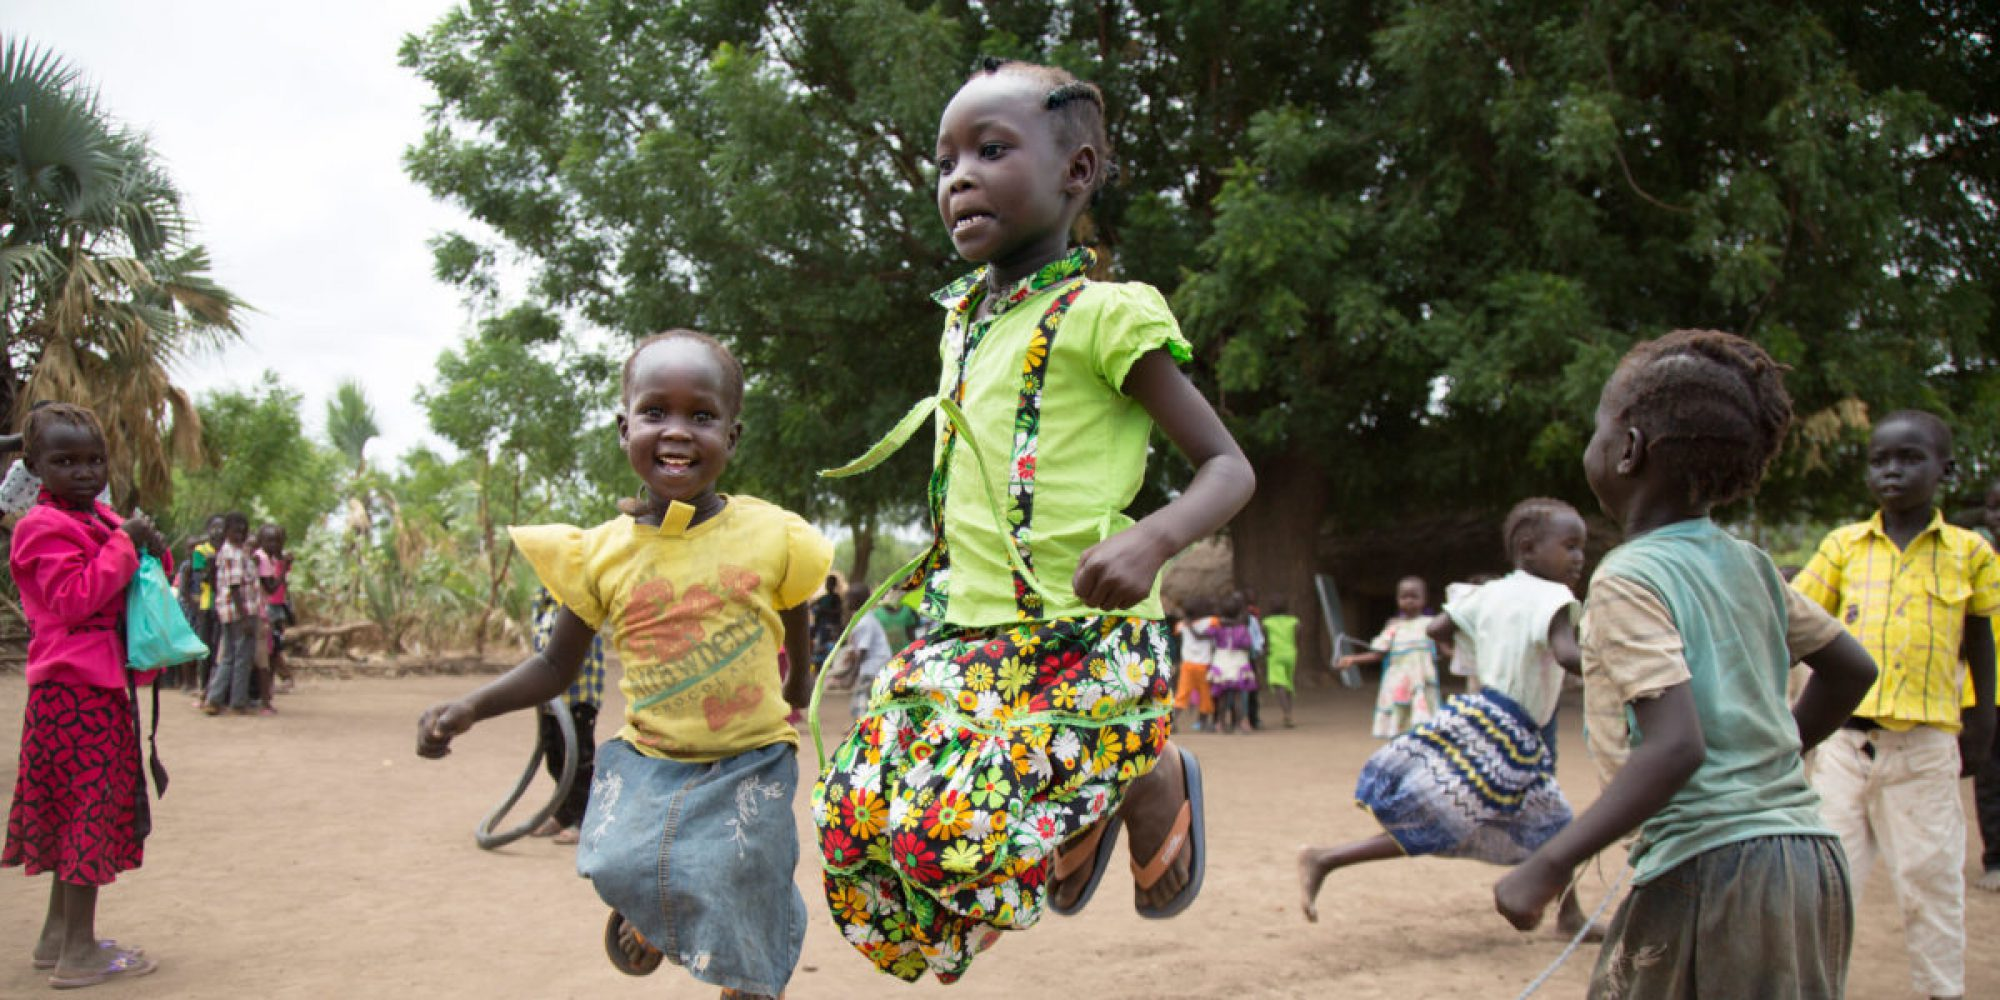 Children play after lunch at the Gulawein school, in Maban, South Sudan.